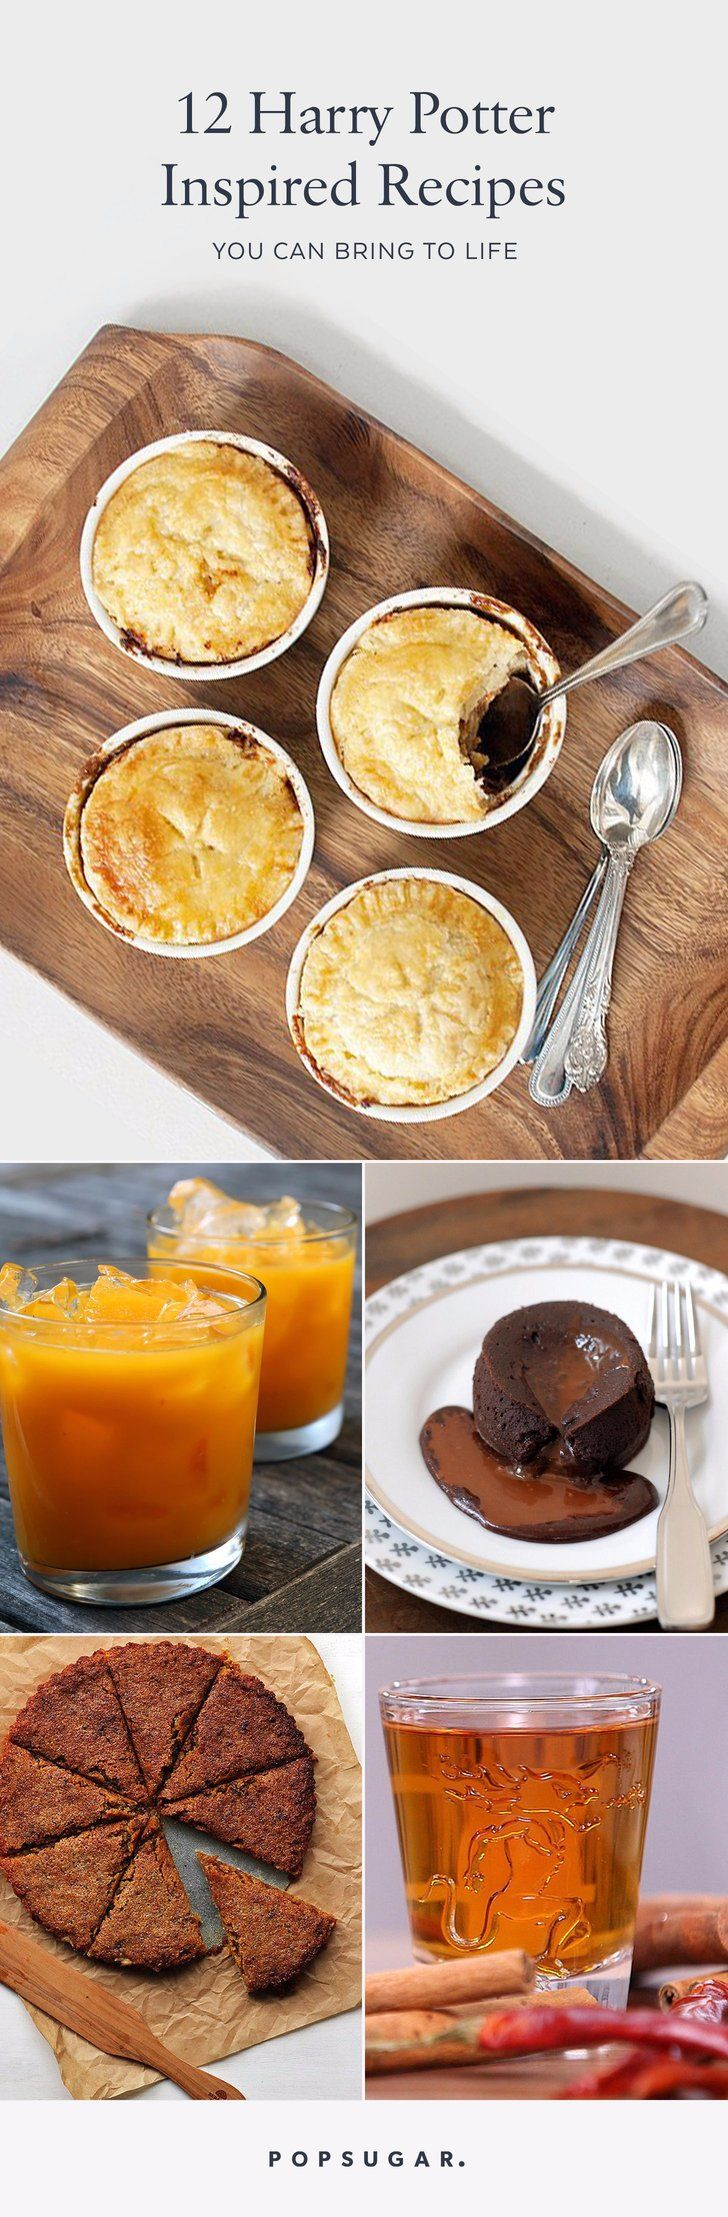 12 Harry Potter-Inspired Recipes You Can Bring to Life